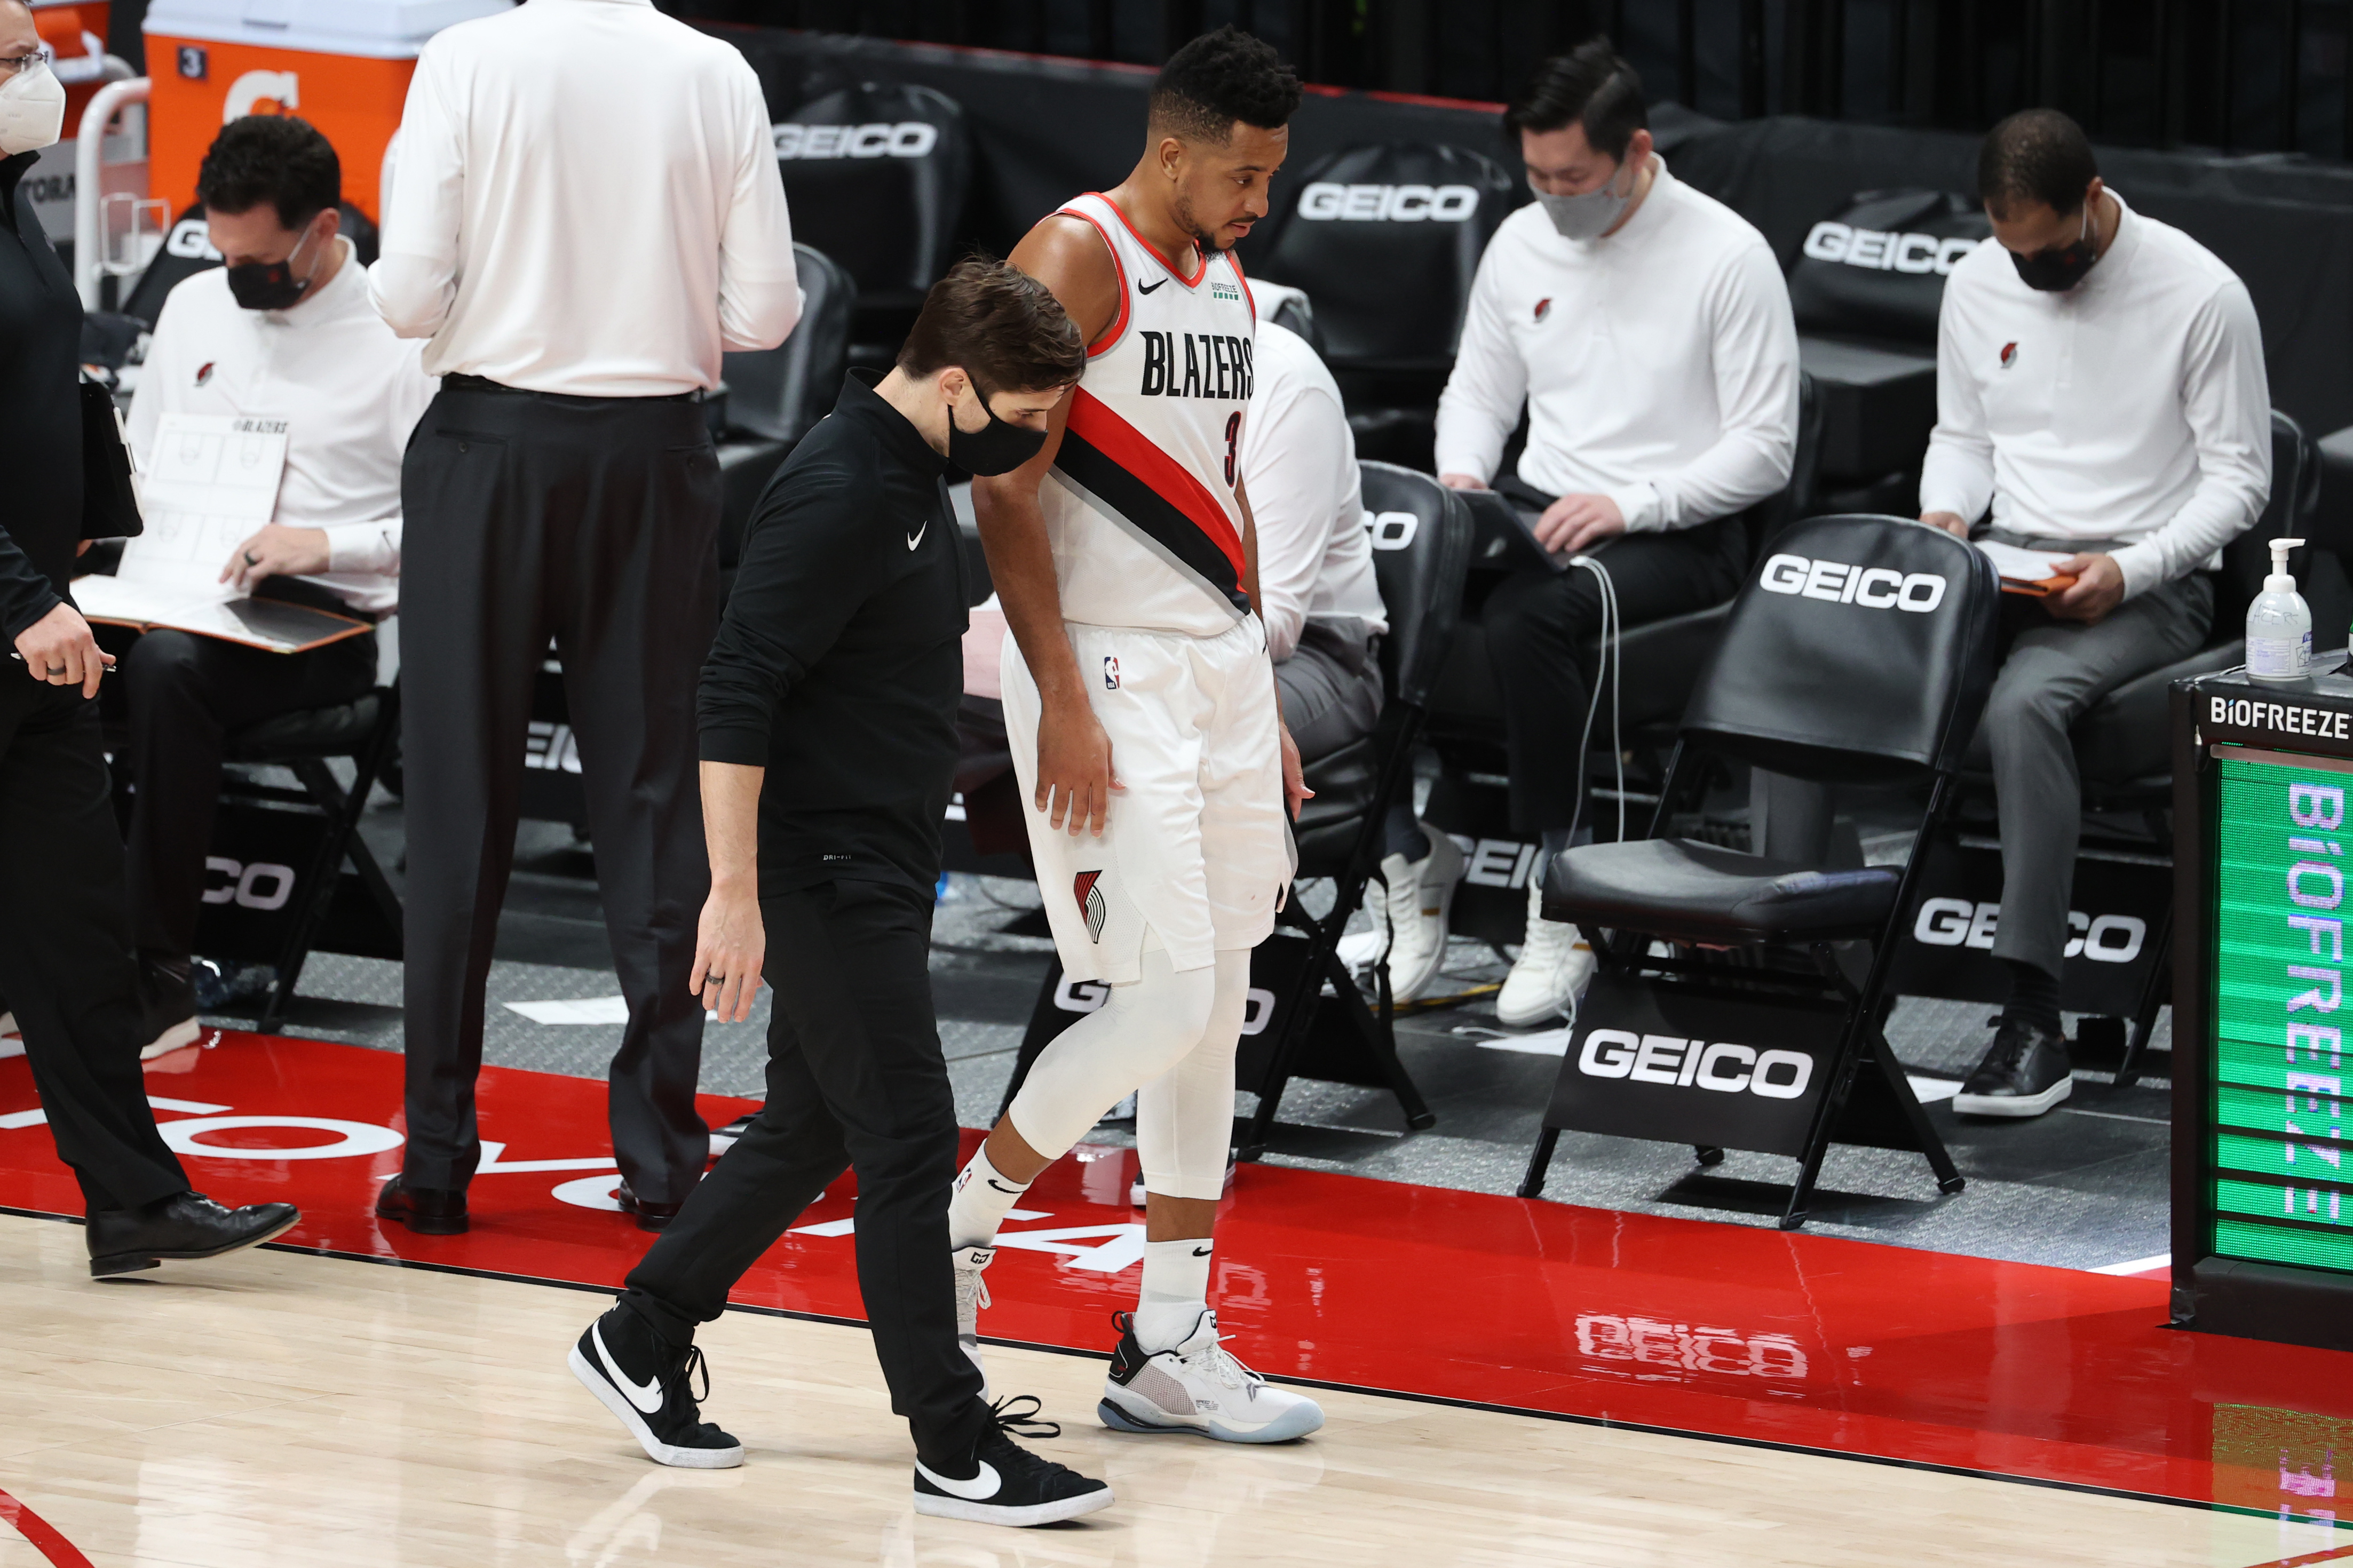 Portland Trail Blazer's guard CJ McCollum will be out for an extended period of time after further testing revealed a serious injury.